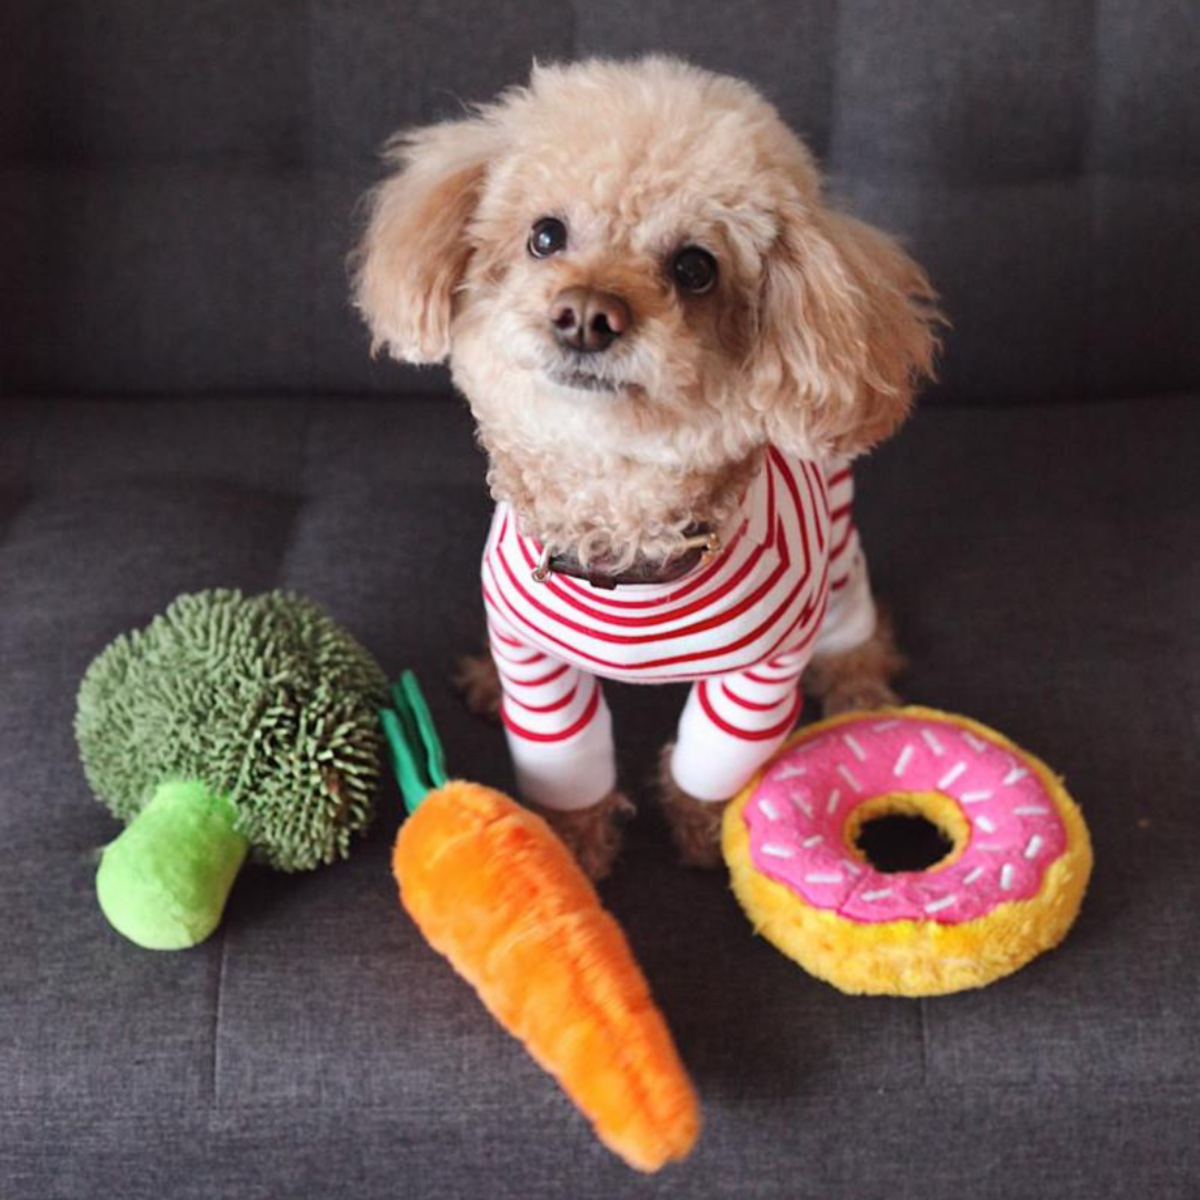 Make sure you choose a healthy diet for your pup.